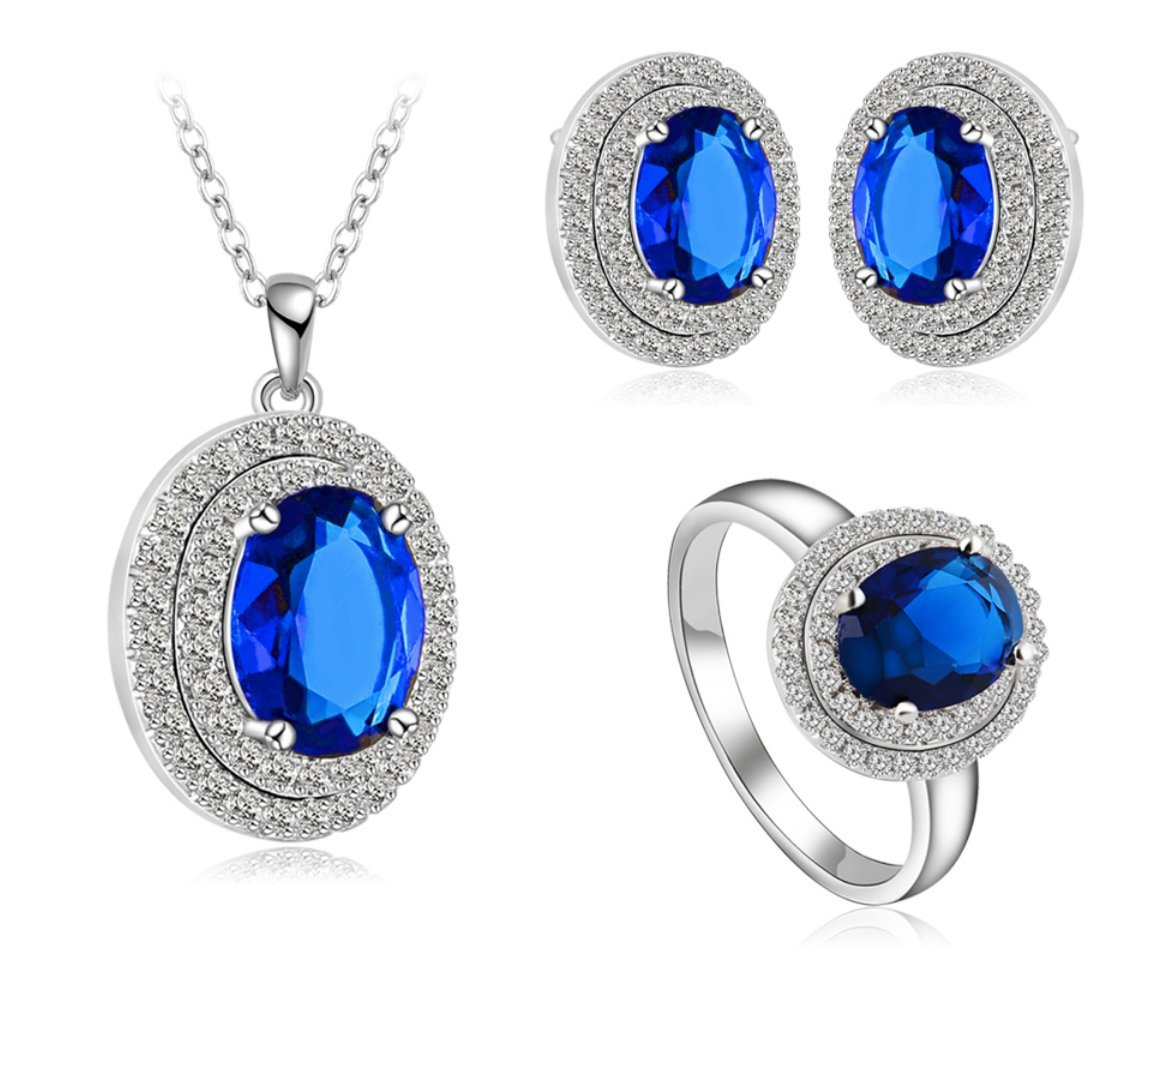 Elegant Gold Plated Sapphire Jewelry Sets Fashion Necklace Earrings Gift - September birthstone